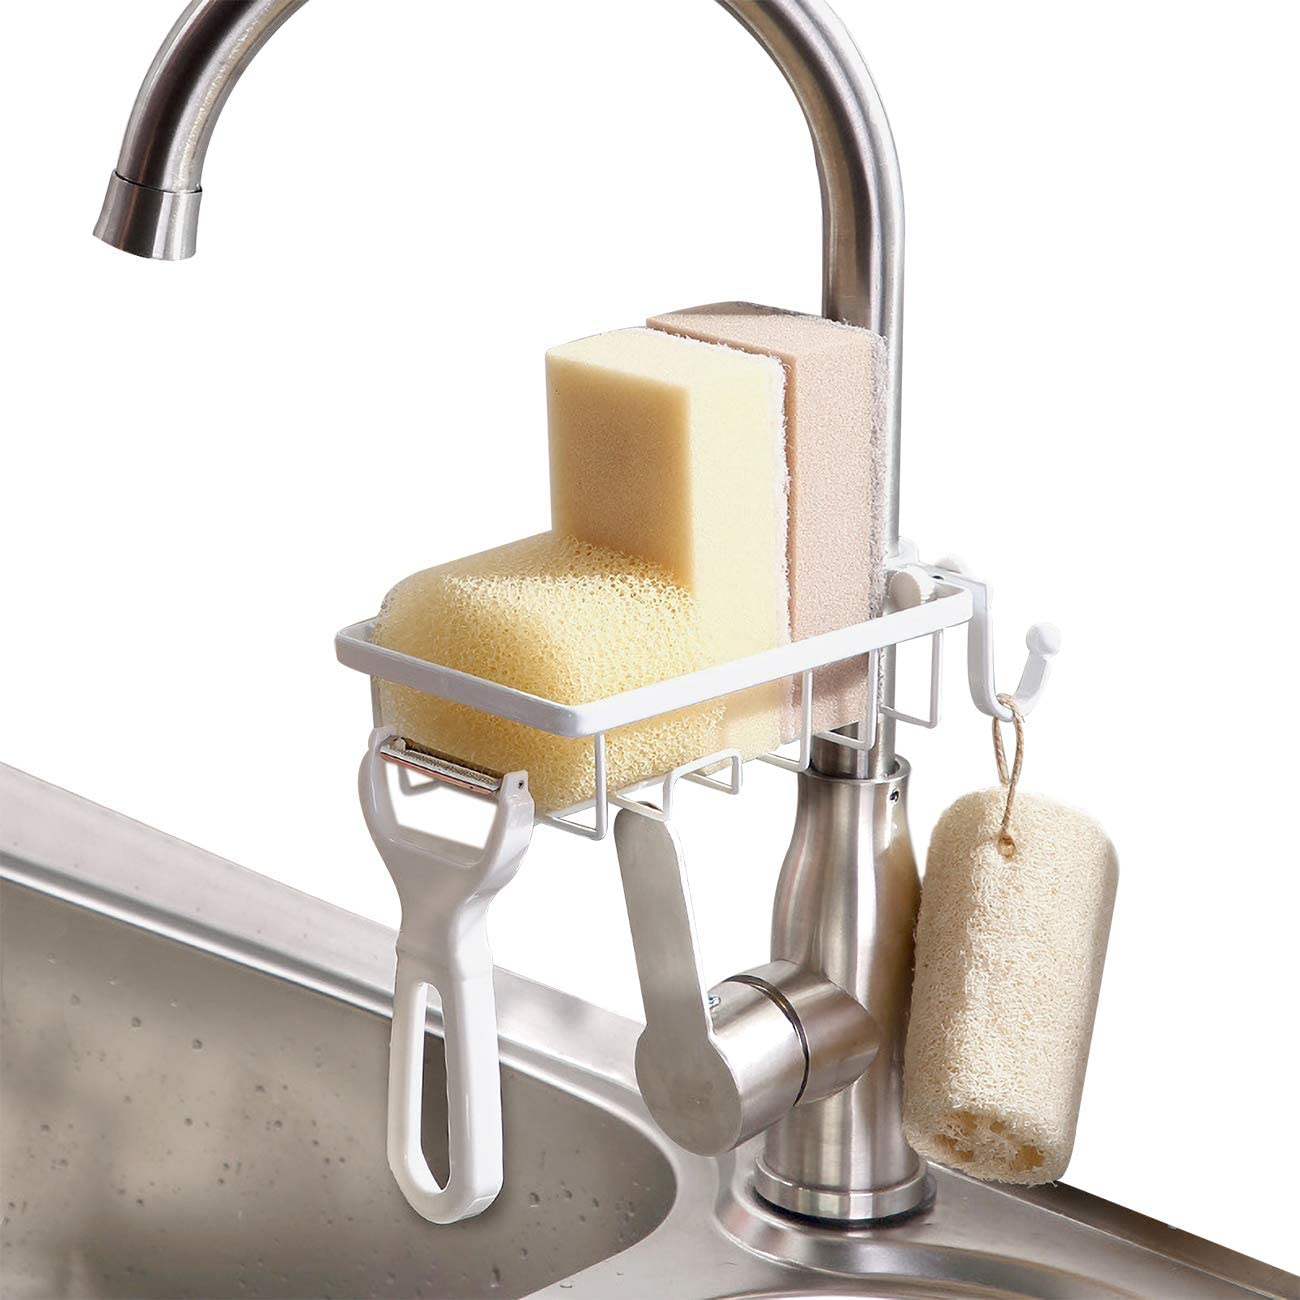 GeLive Faucet Sponge Same day shipping Holder Soap Dish Caddy Organi Kitchen Cheap bargain Sink